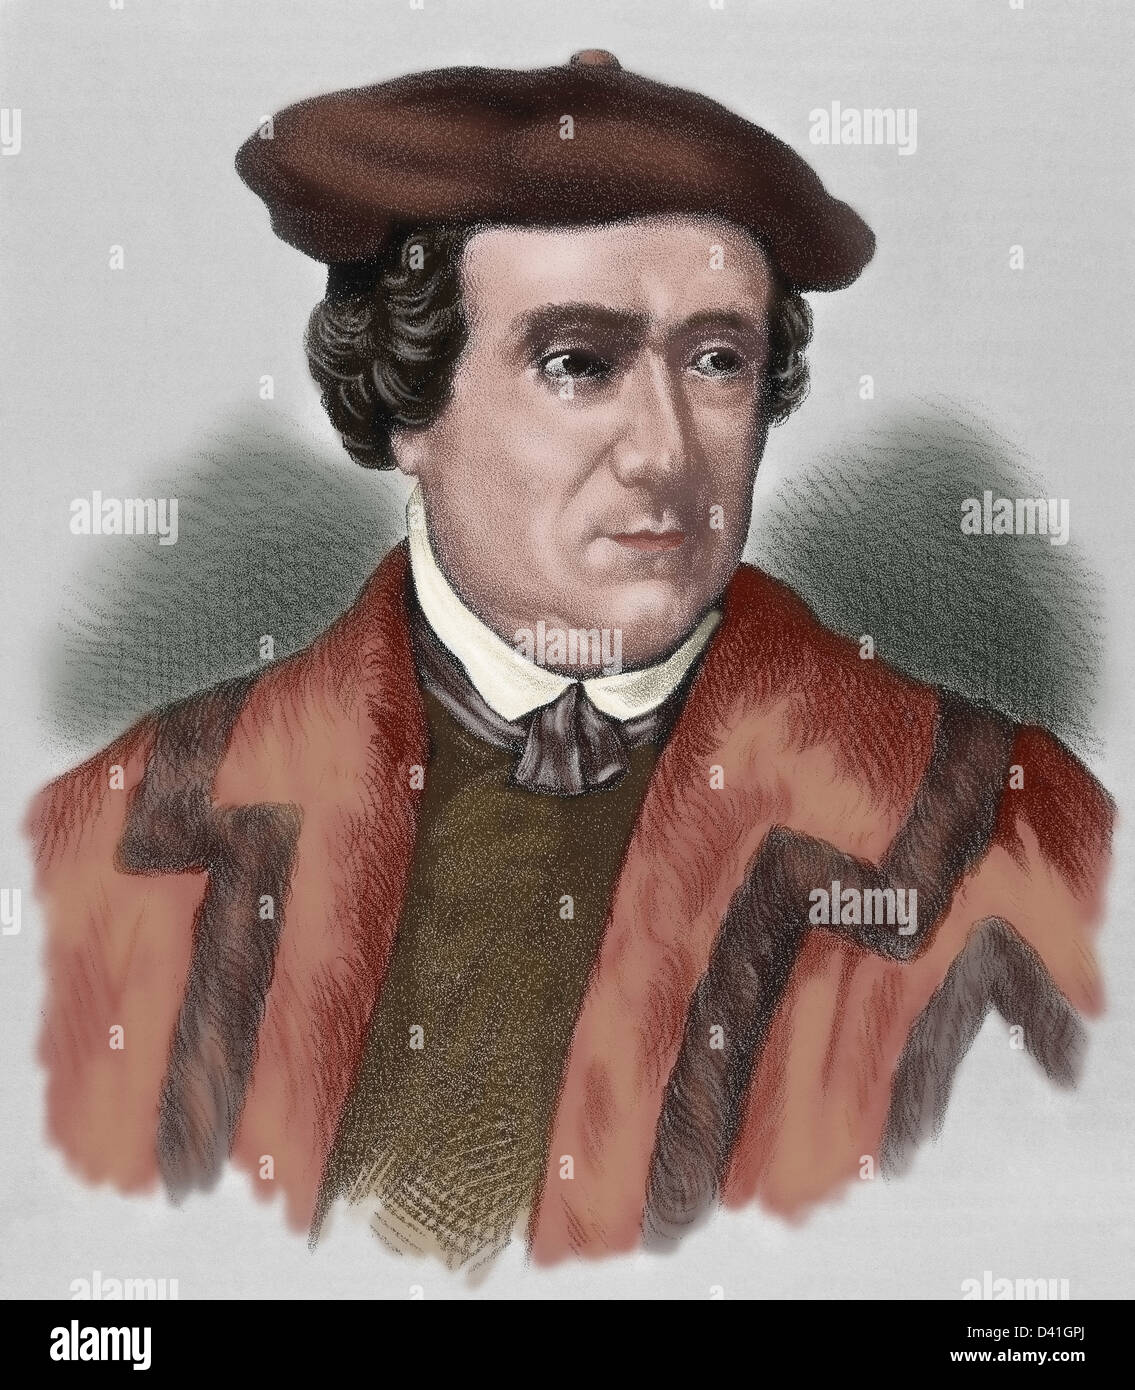 Martin Luther, (1483-1546). German reformer. Doctor of Theology and Augustinian priest. Colored engraving. - Stock Image